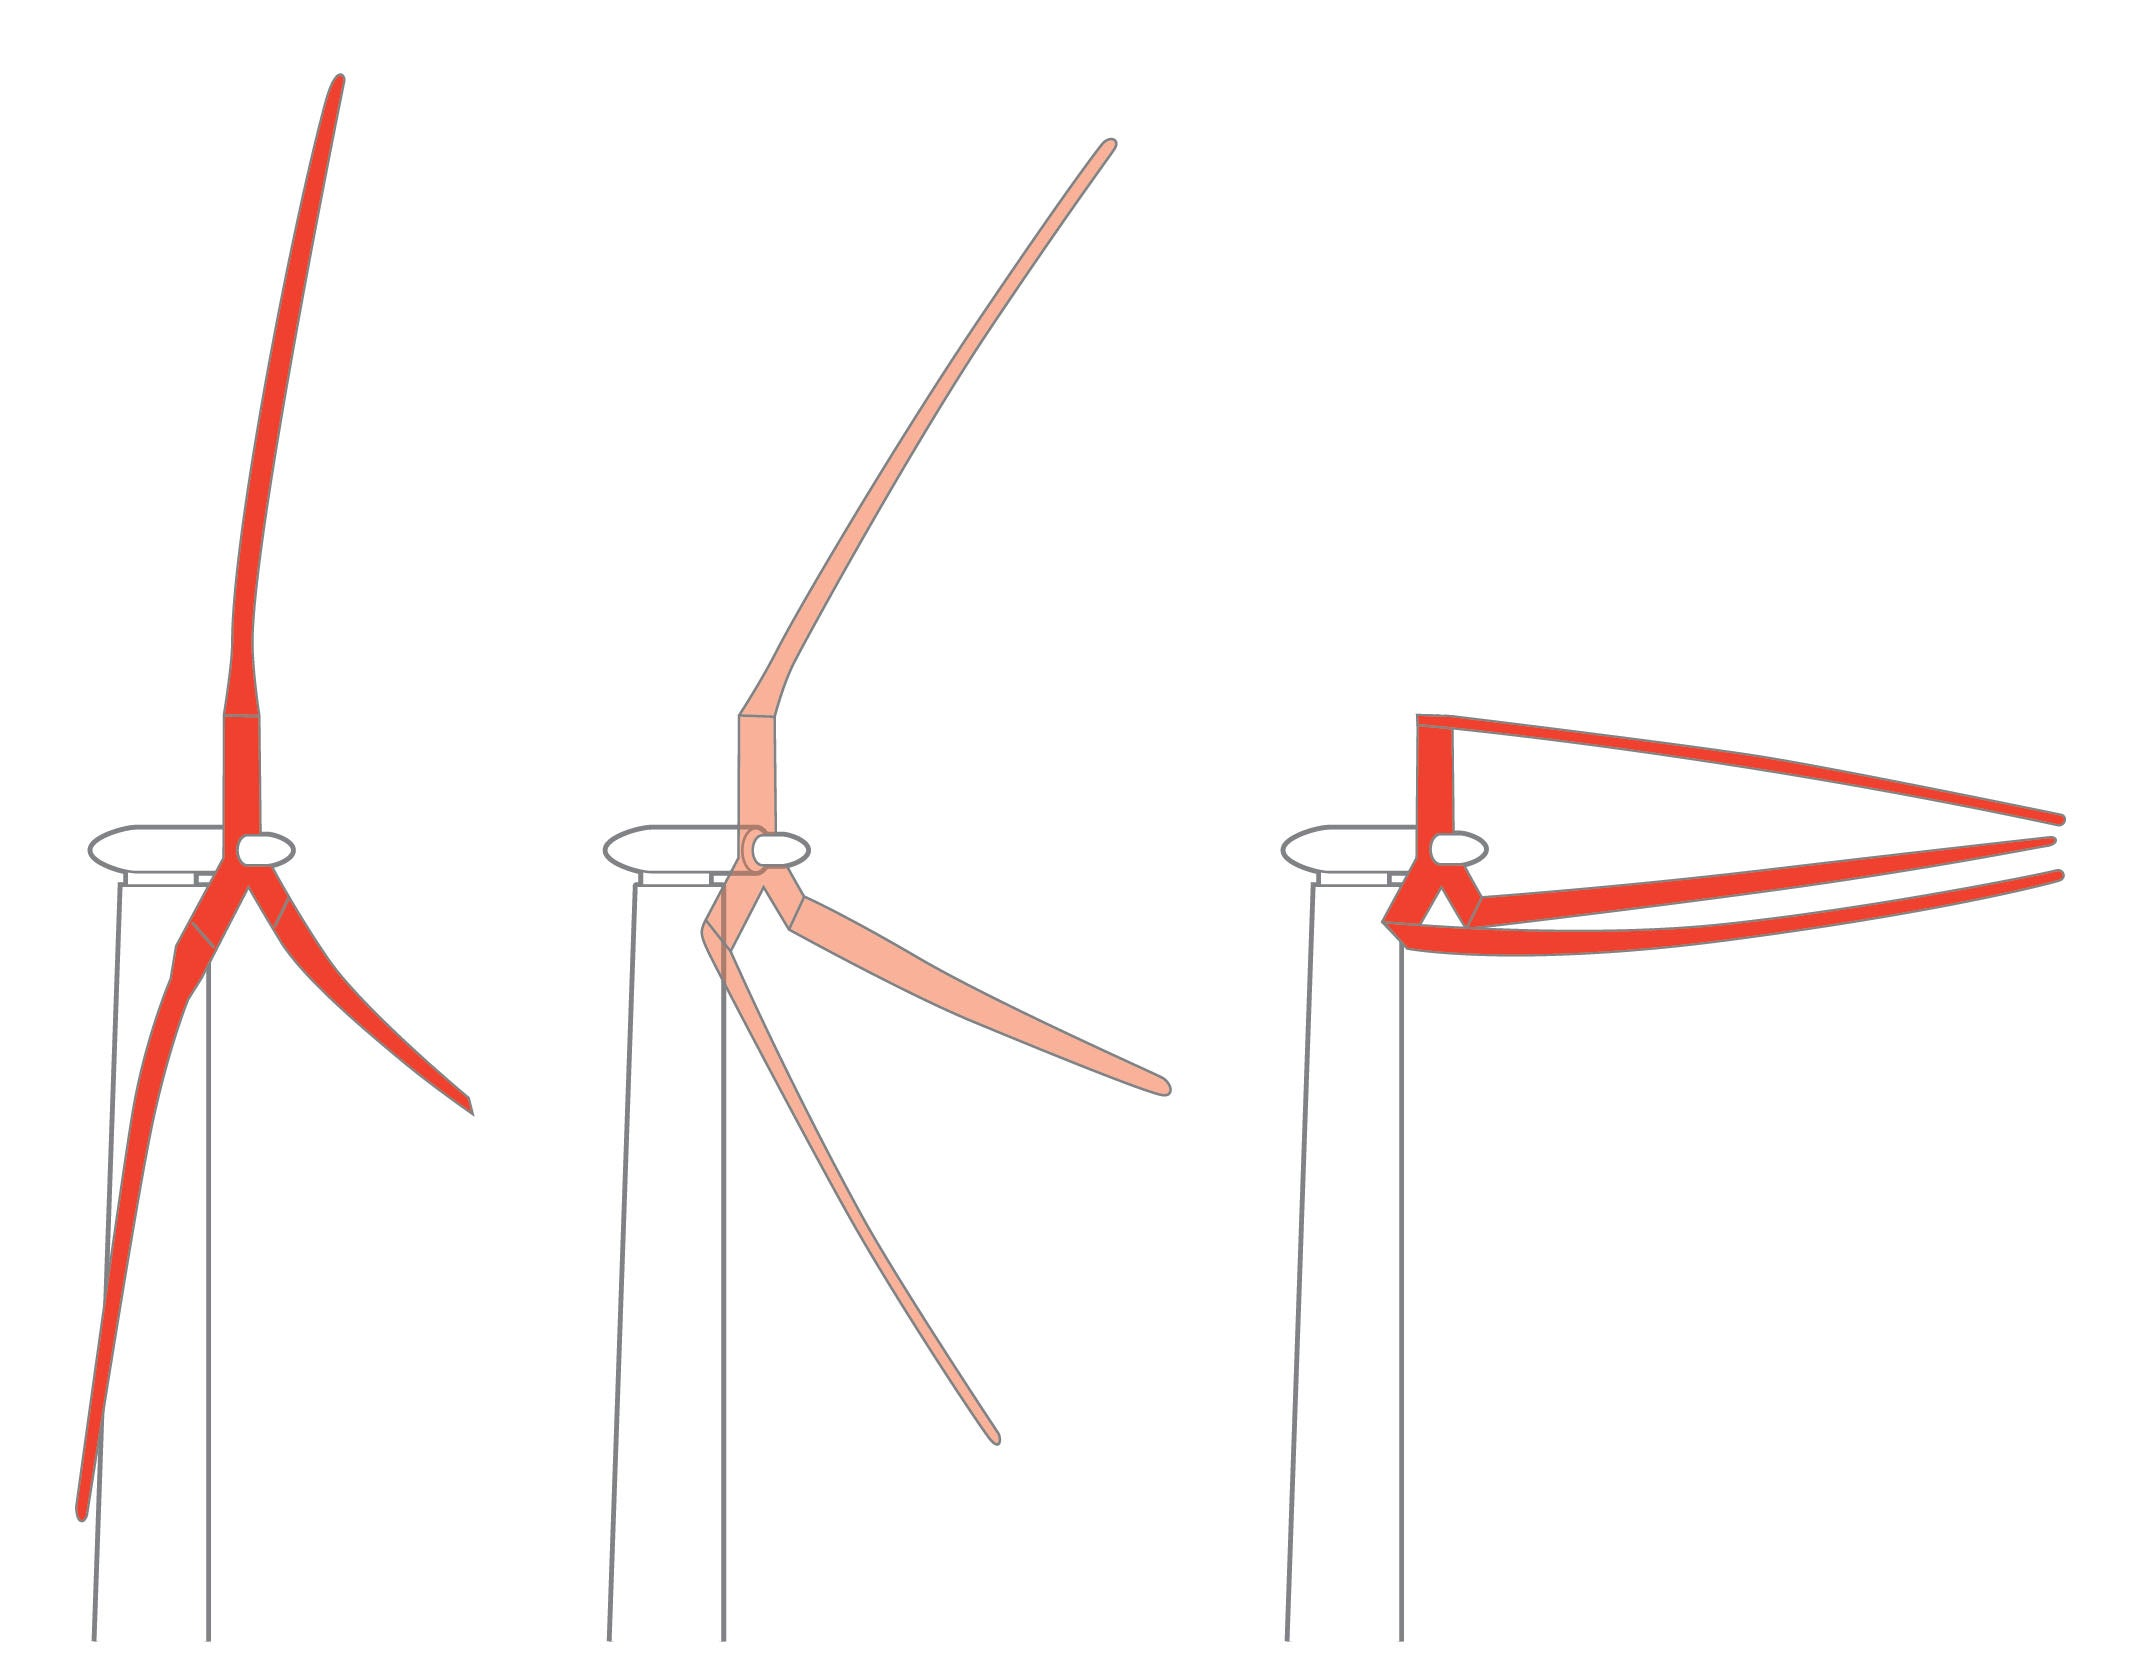 Gigantic Wind Turbine With 200 Metre Blades Will Channel The Power Diagram 198m Of Hurricanes